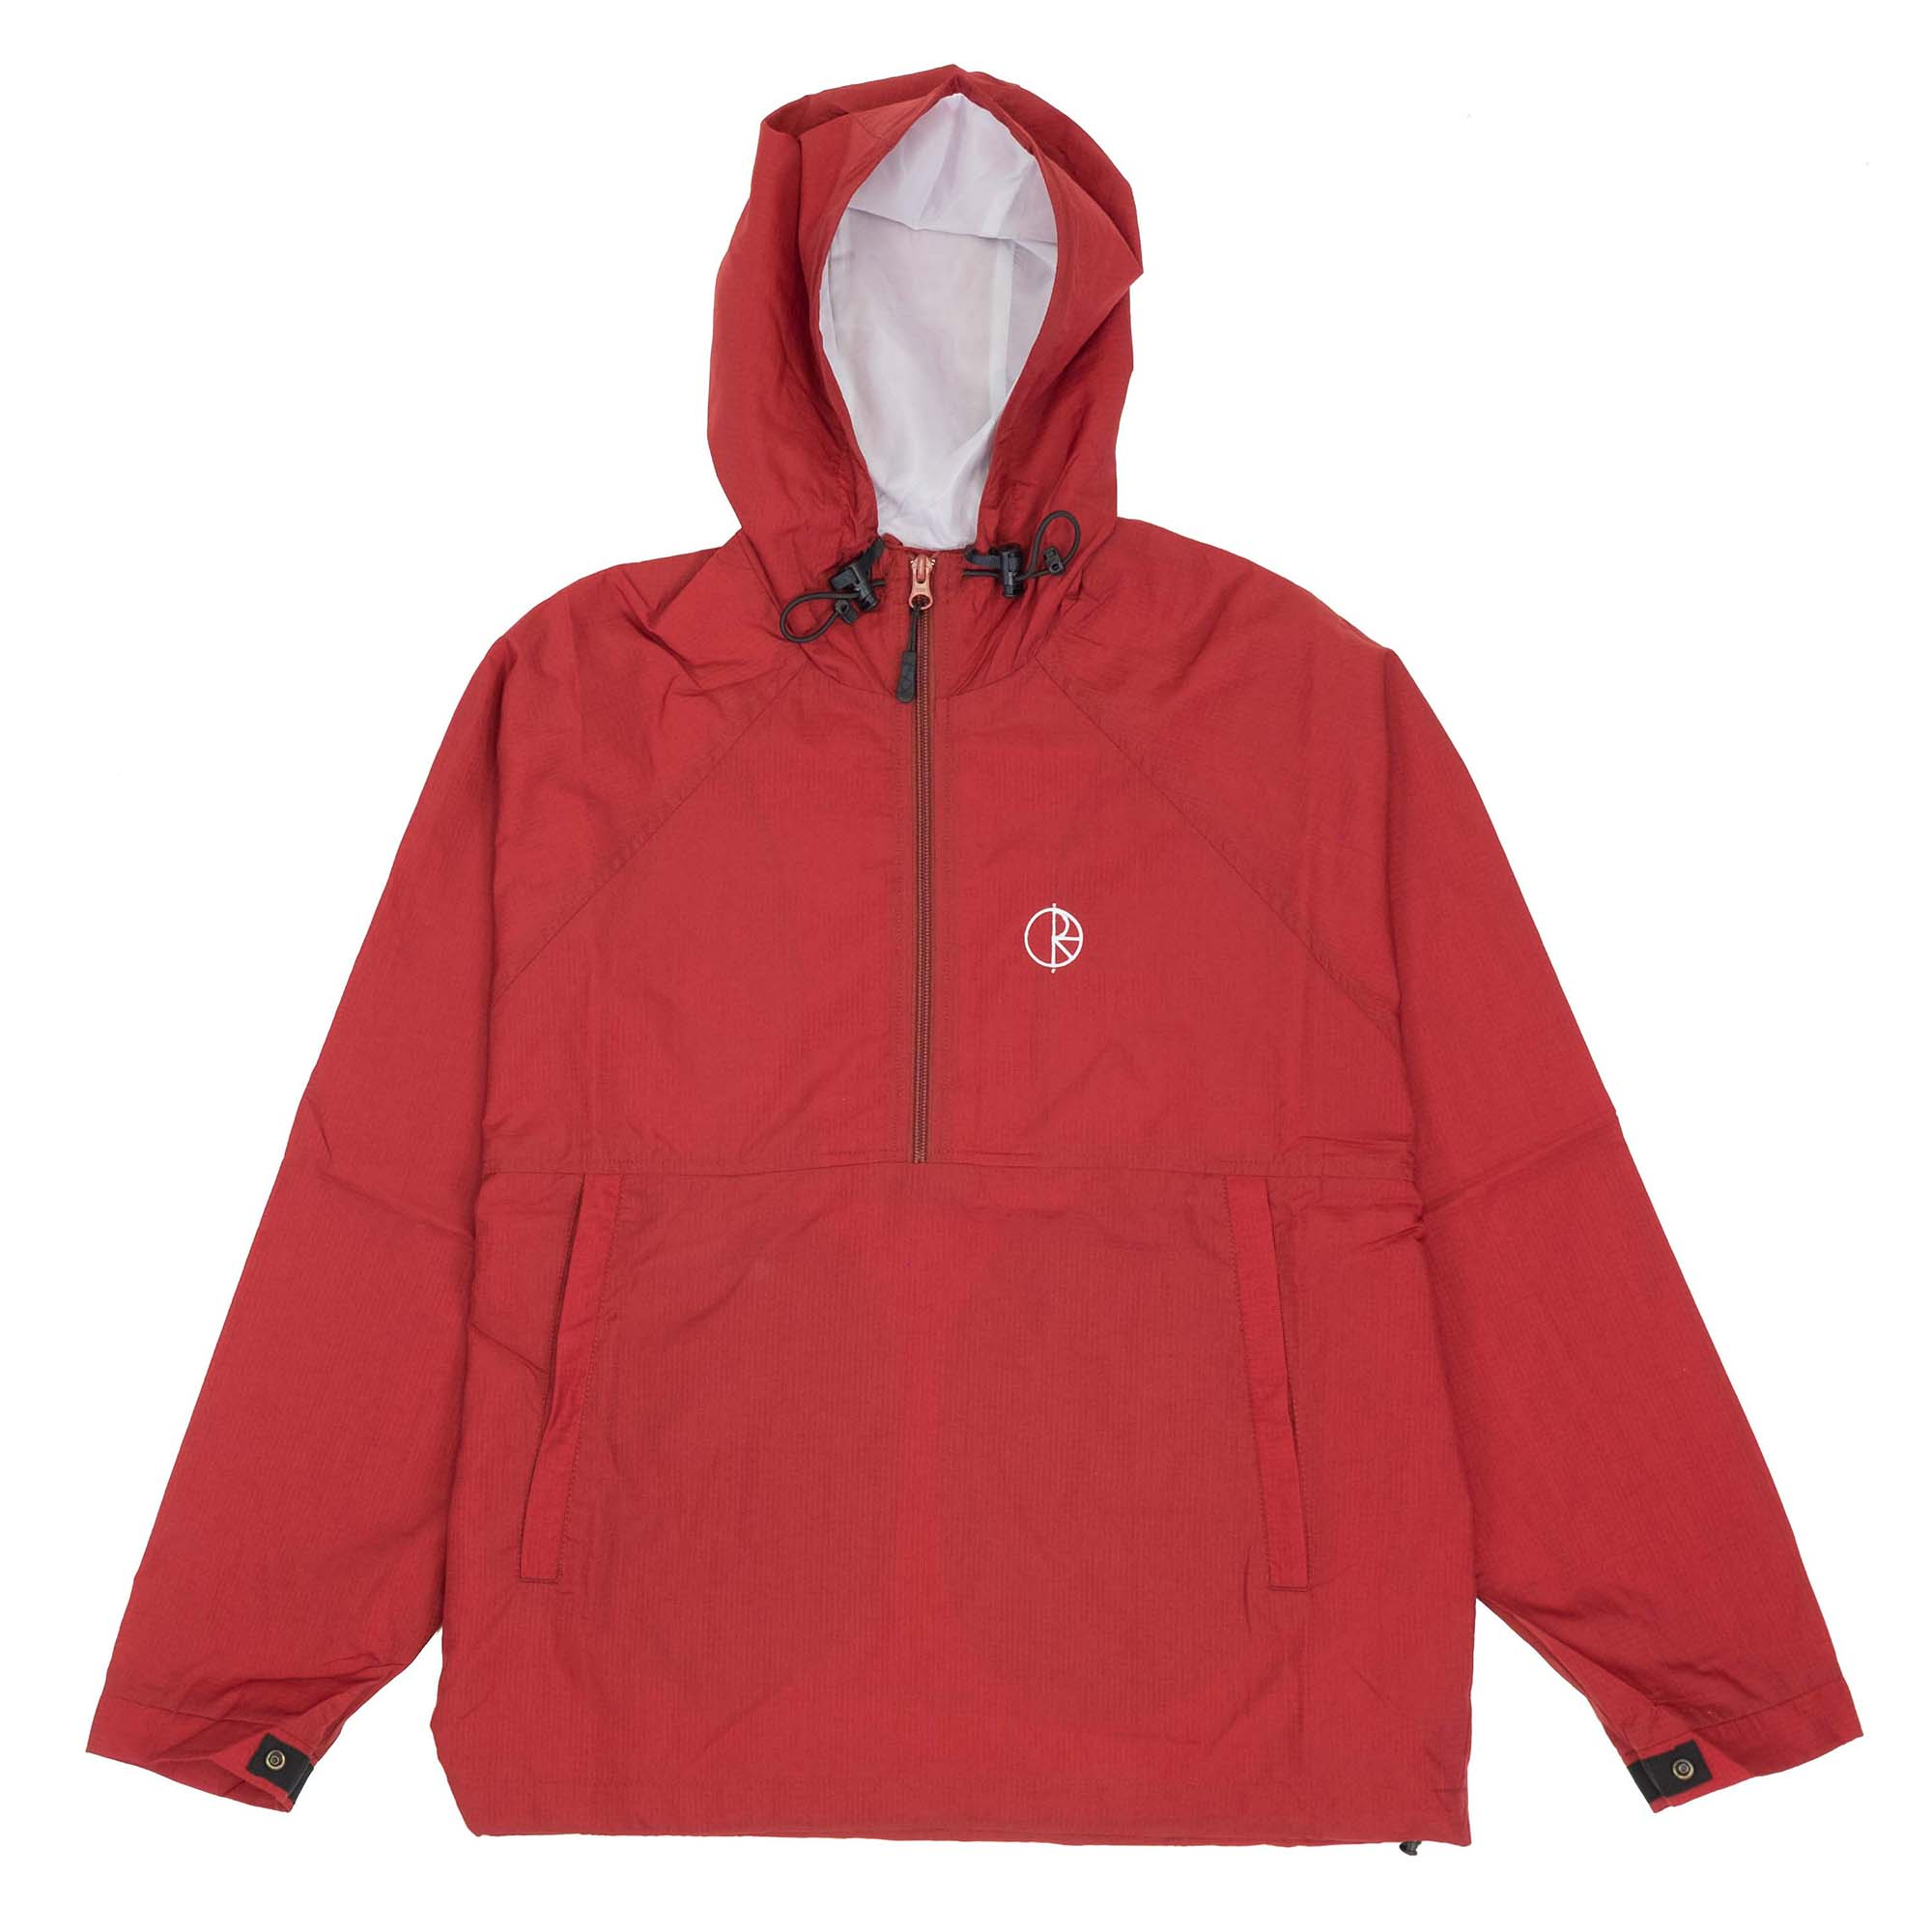 Polar Skate Co. Ripstop Anorak Jacket - Red